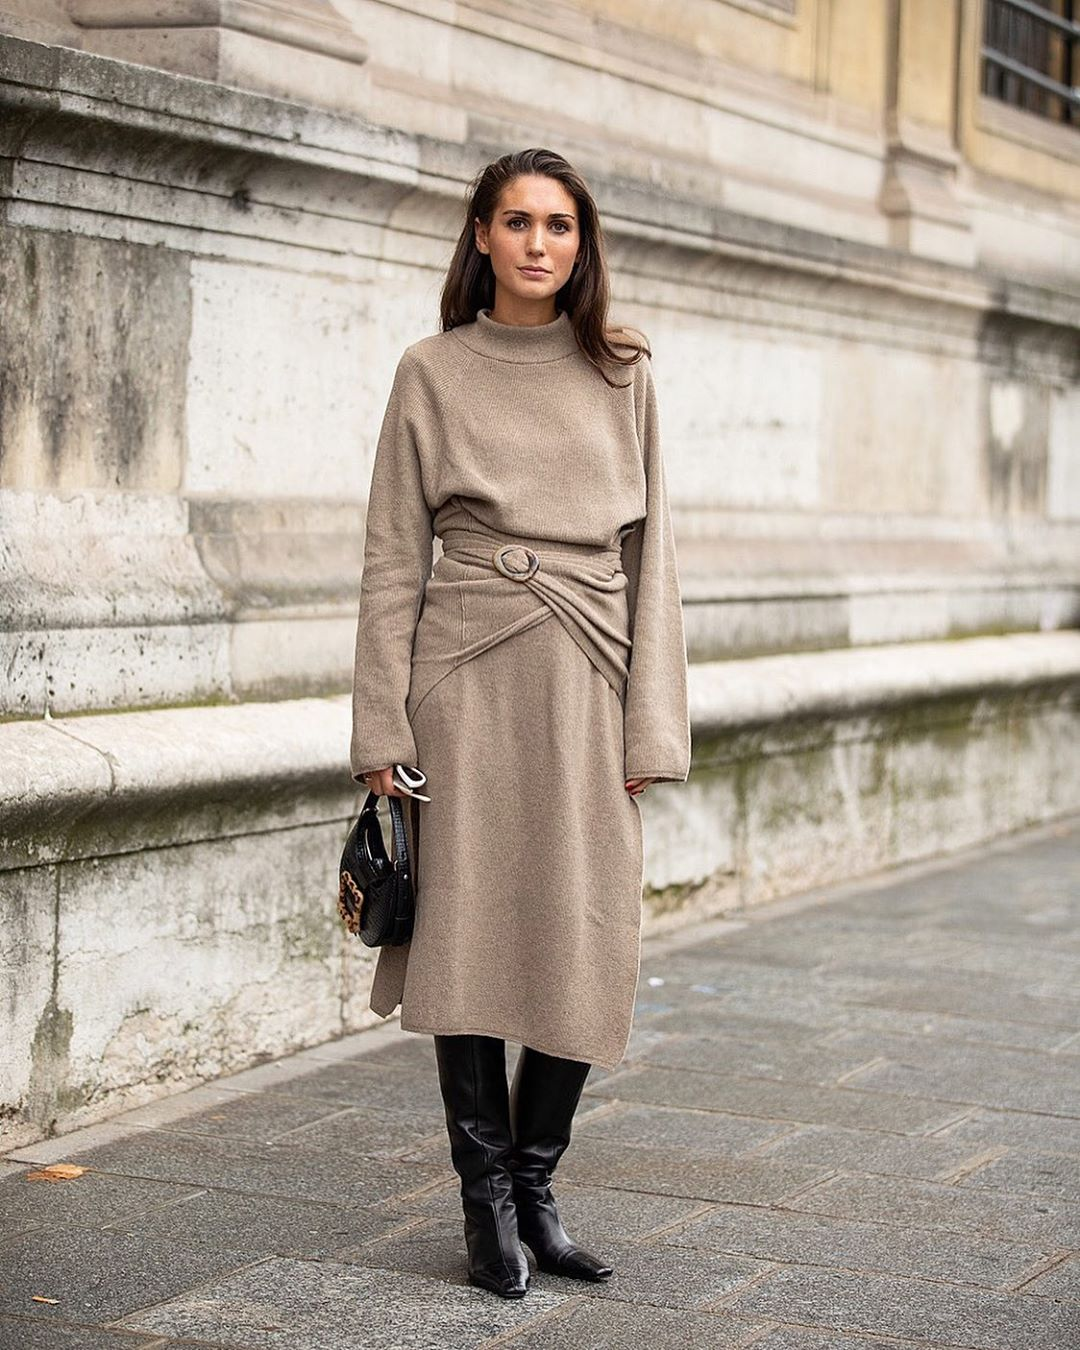 The Sweater Dress is a Can't-Miss Fall Wardrobe Essential